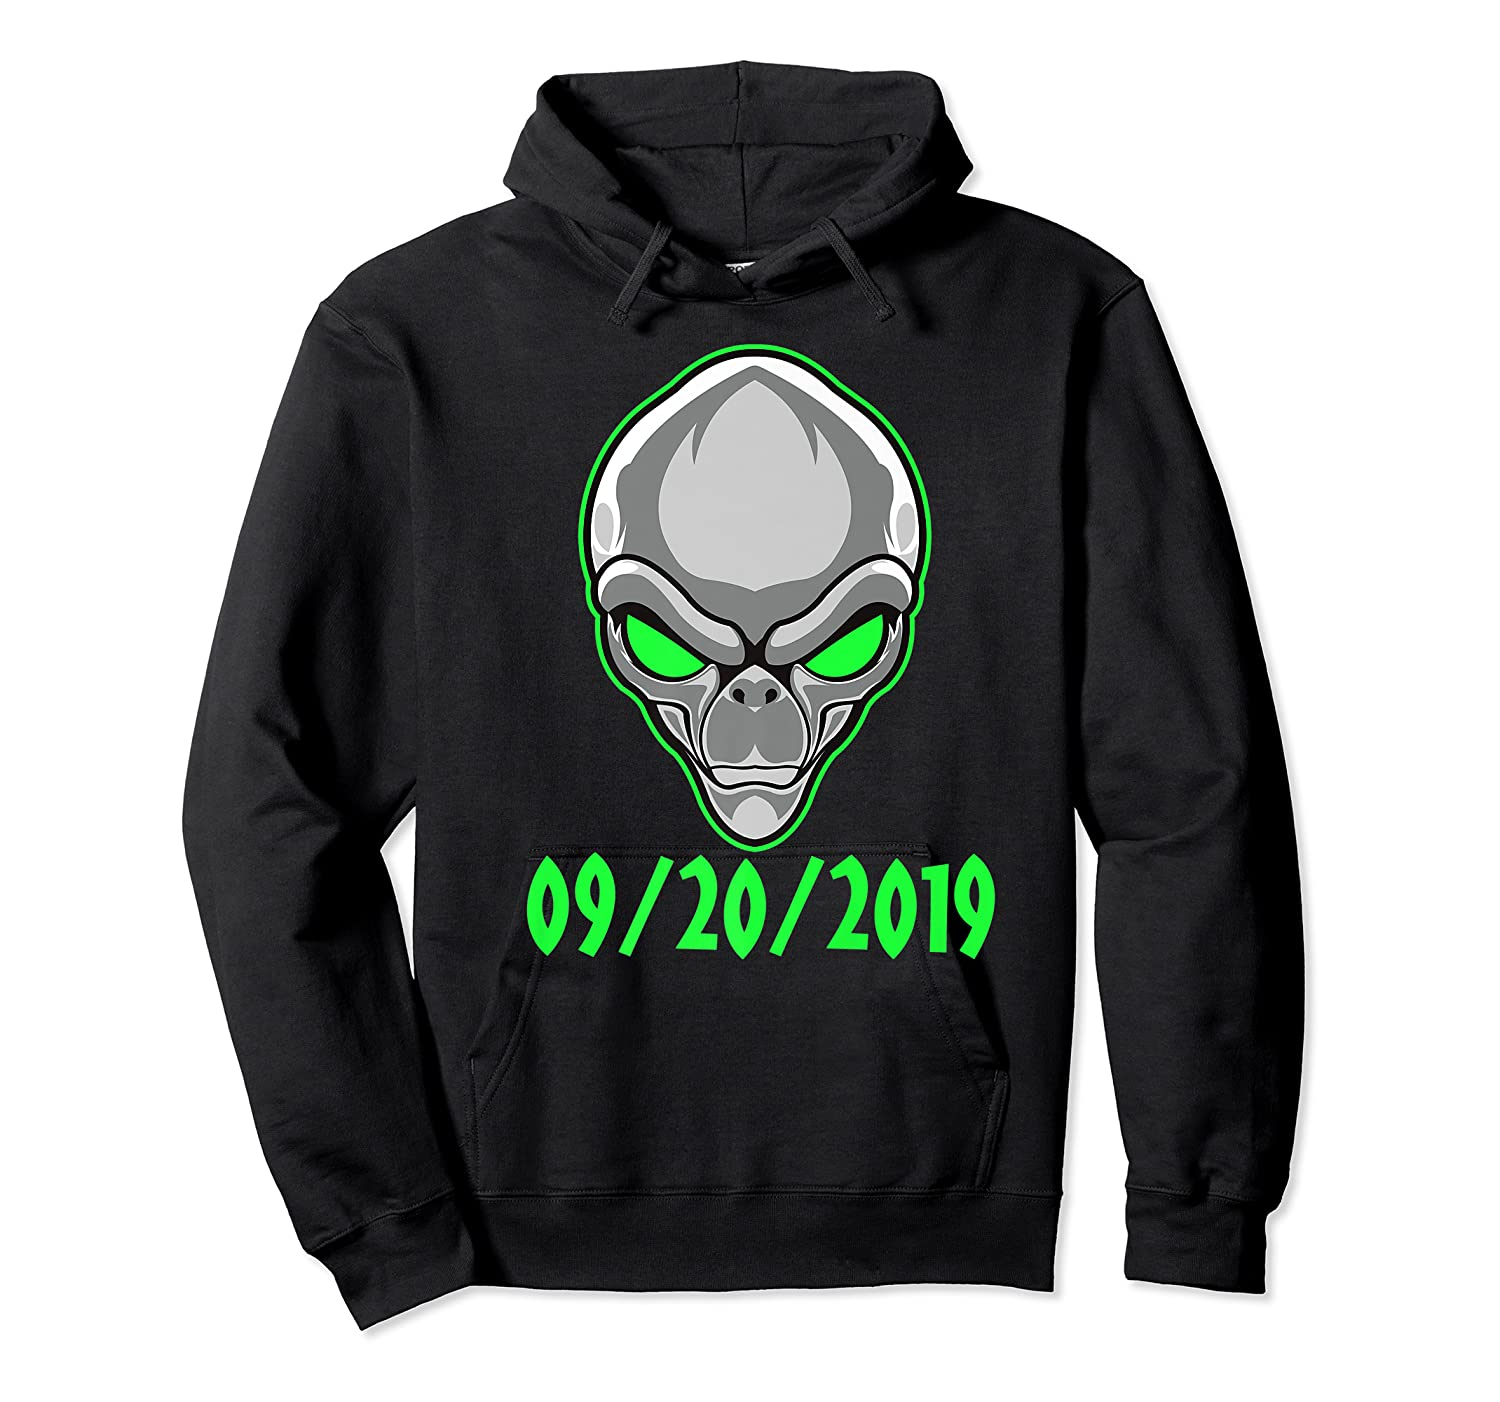 Storm Area 51 See Them Aliens Raid Ufo Cant Stop Us All Shirts Unisex Pullover Hoodie